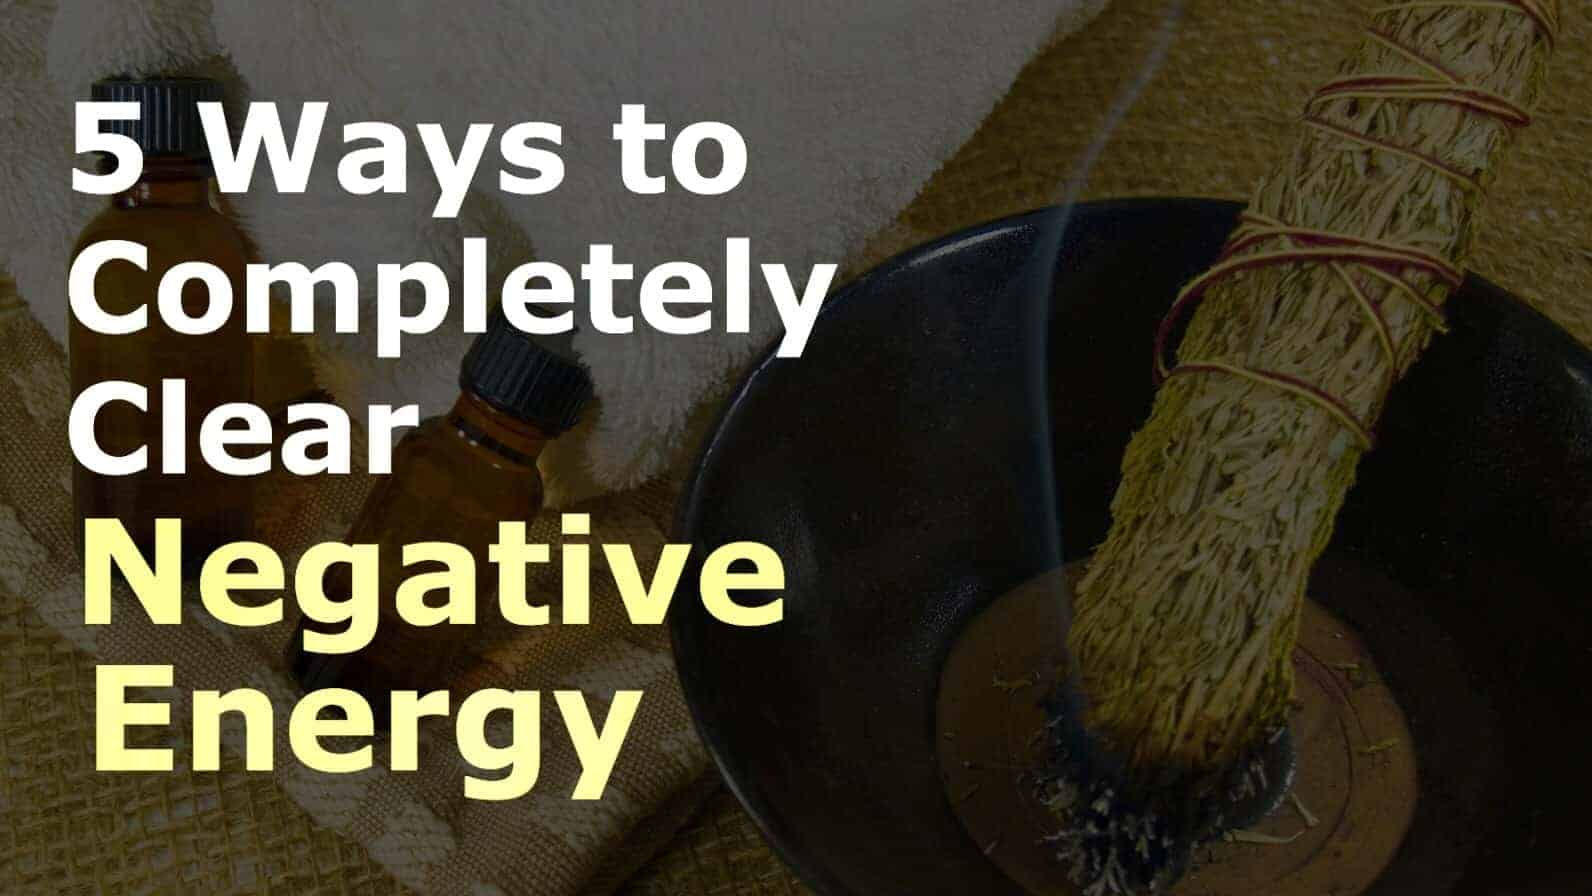 Clearing negative energy 5 ways to remove negative energy How to get rid of bad energy